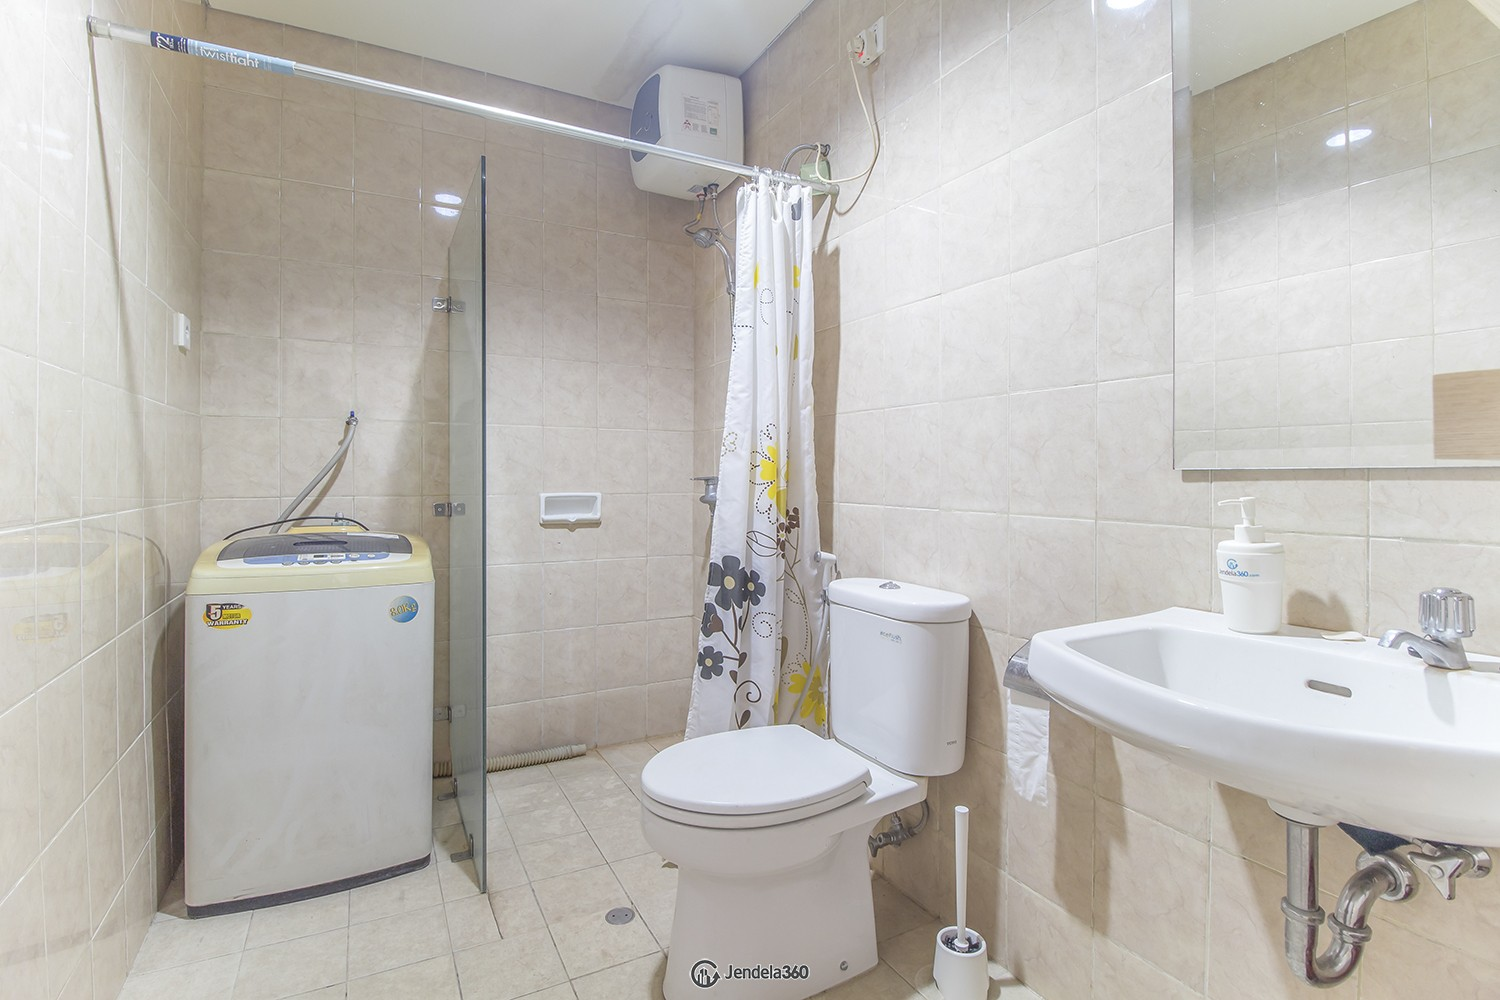 Bathroom Cosmo Terrace - Thamrin City Apartment